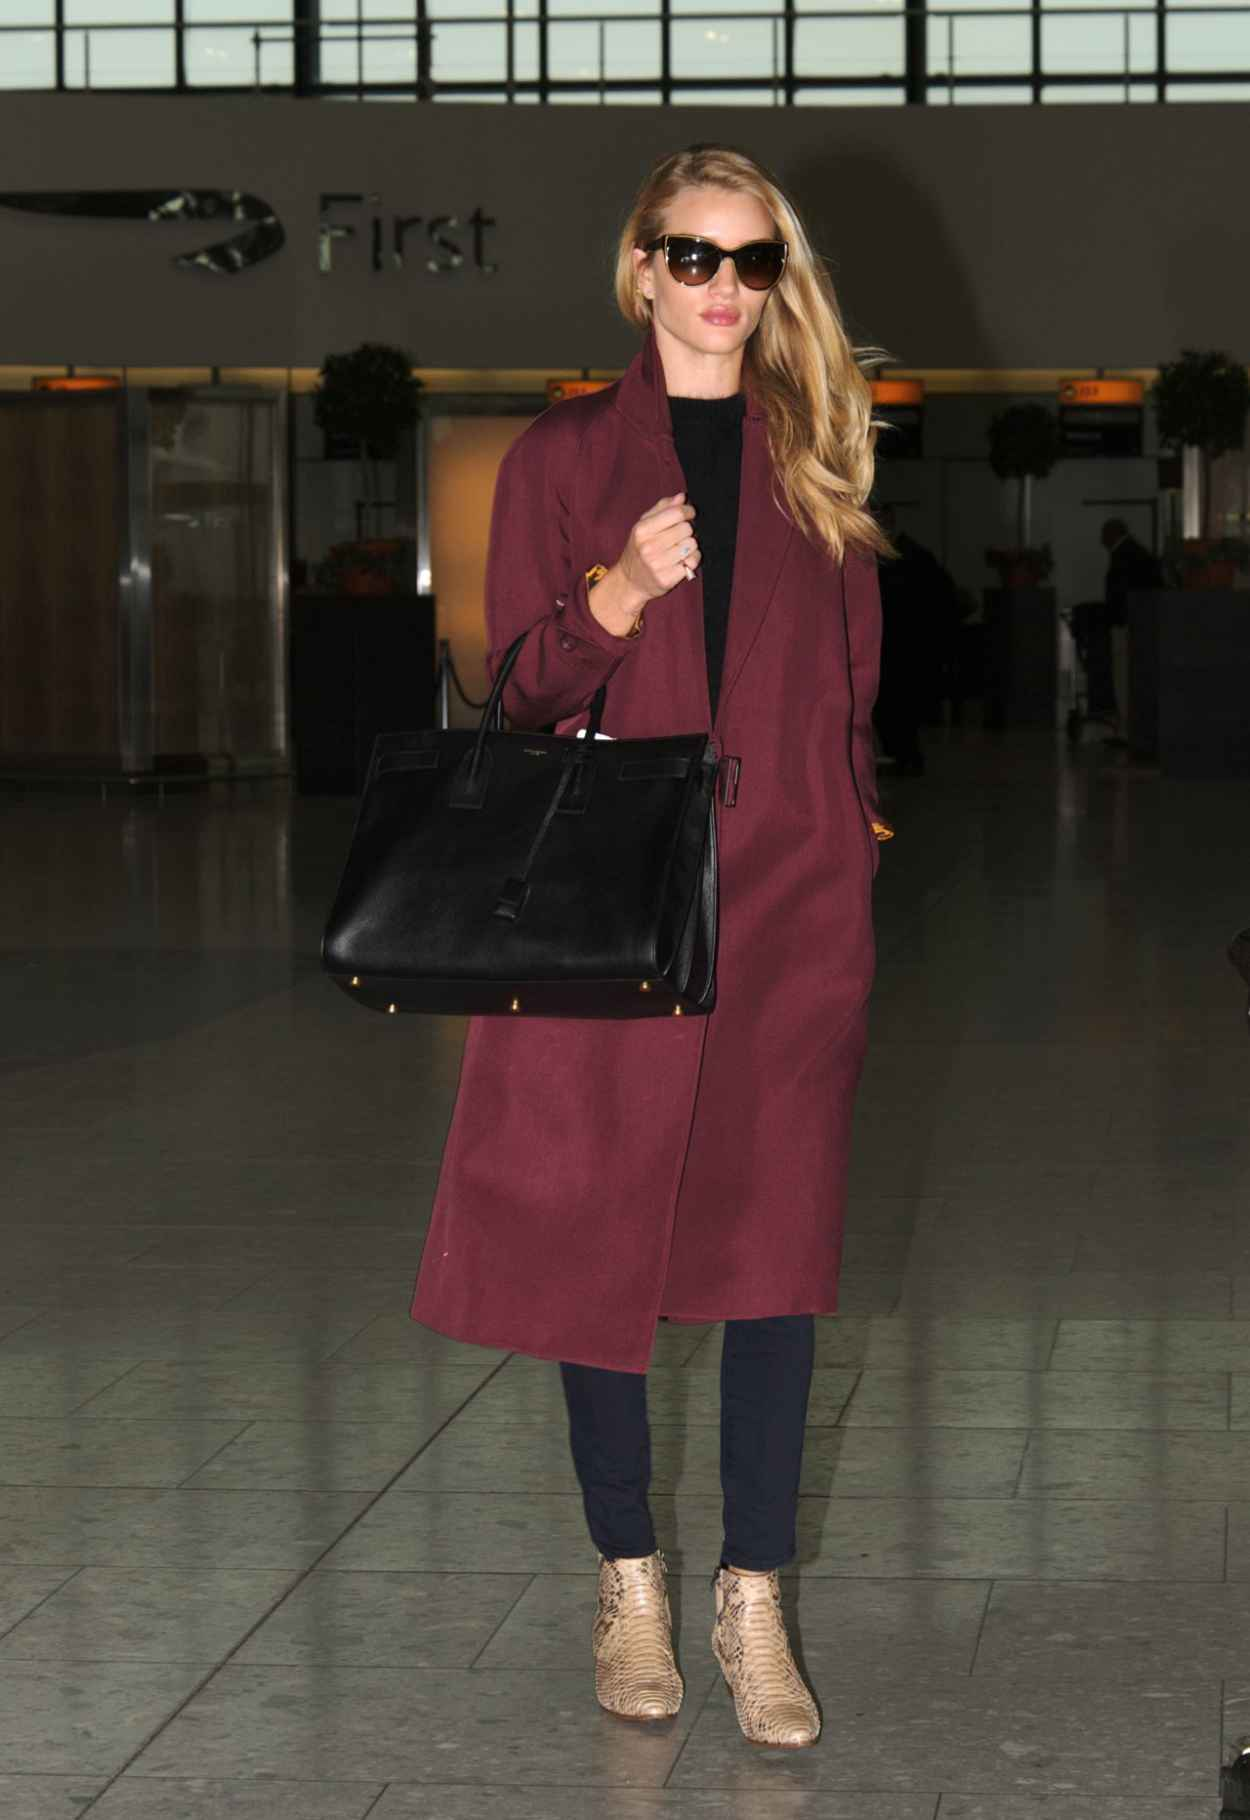 Rosie Huntington-Whiteley at Heathrow Airport in London - May 2015-5